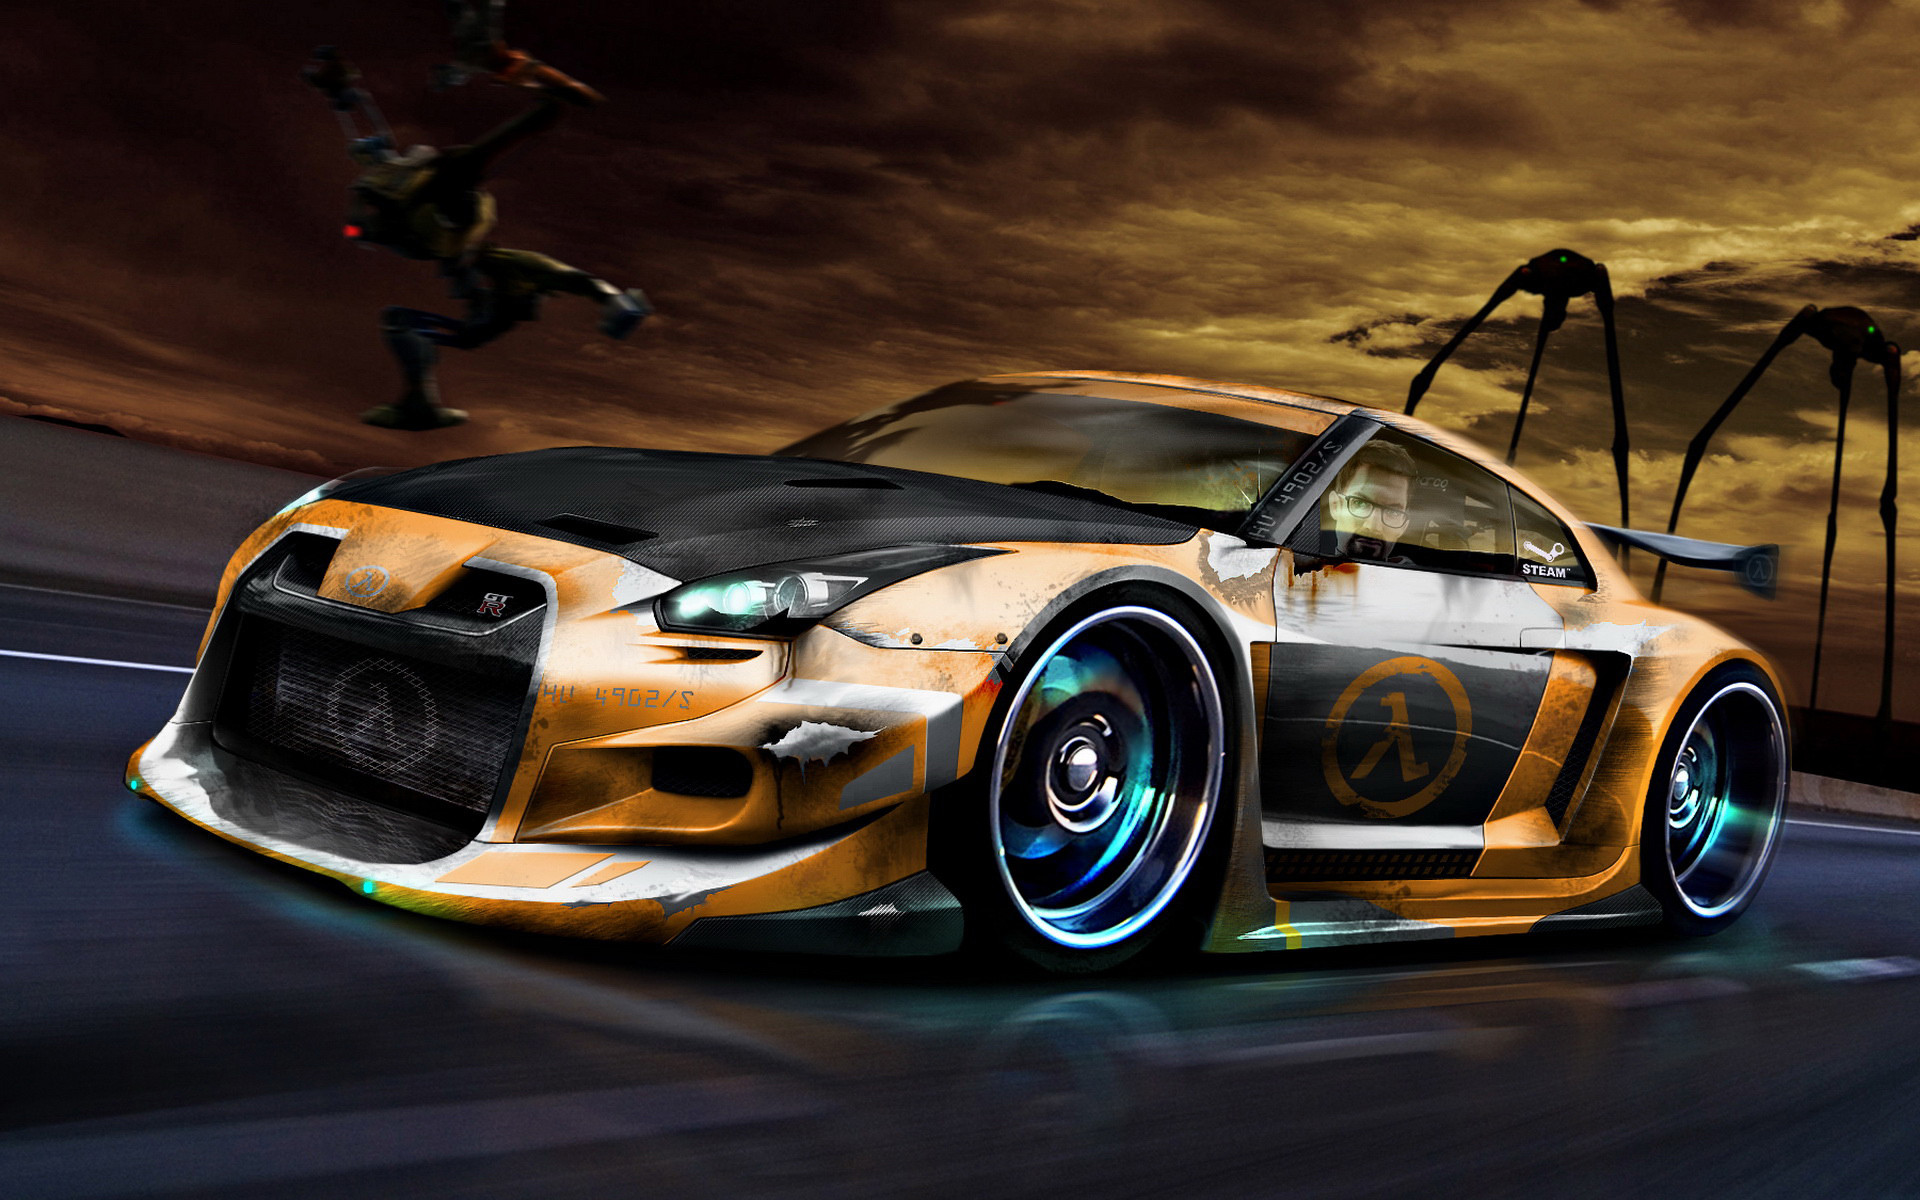 533228-street-racing-cars-wallpapers-1920x1200-lockscreen.jpg